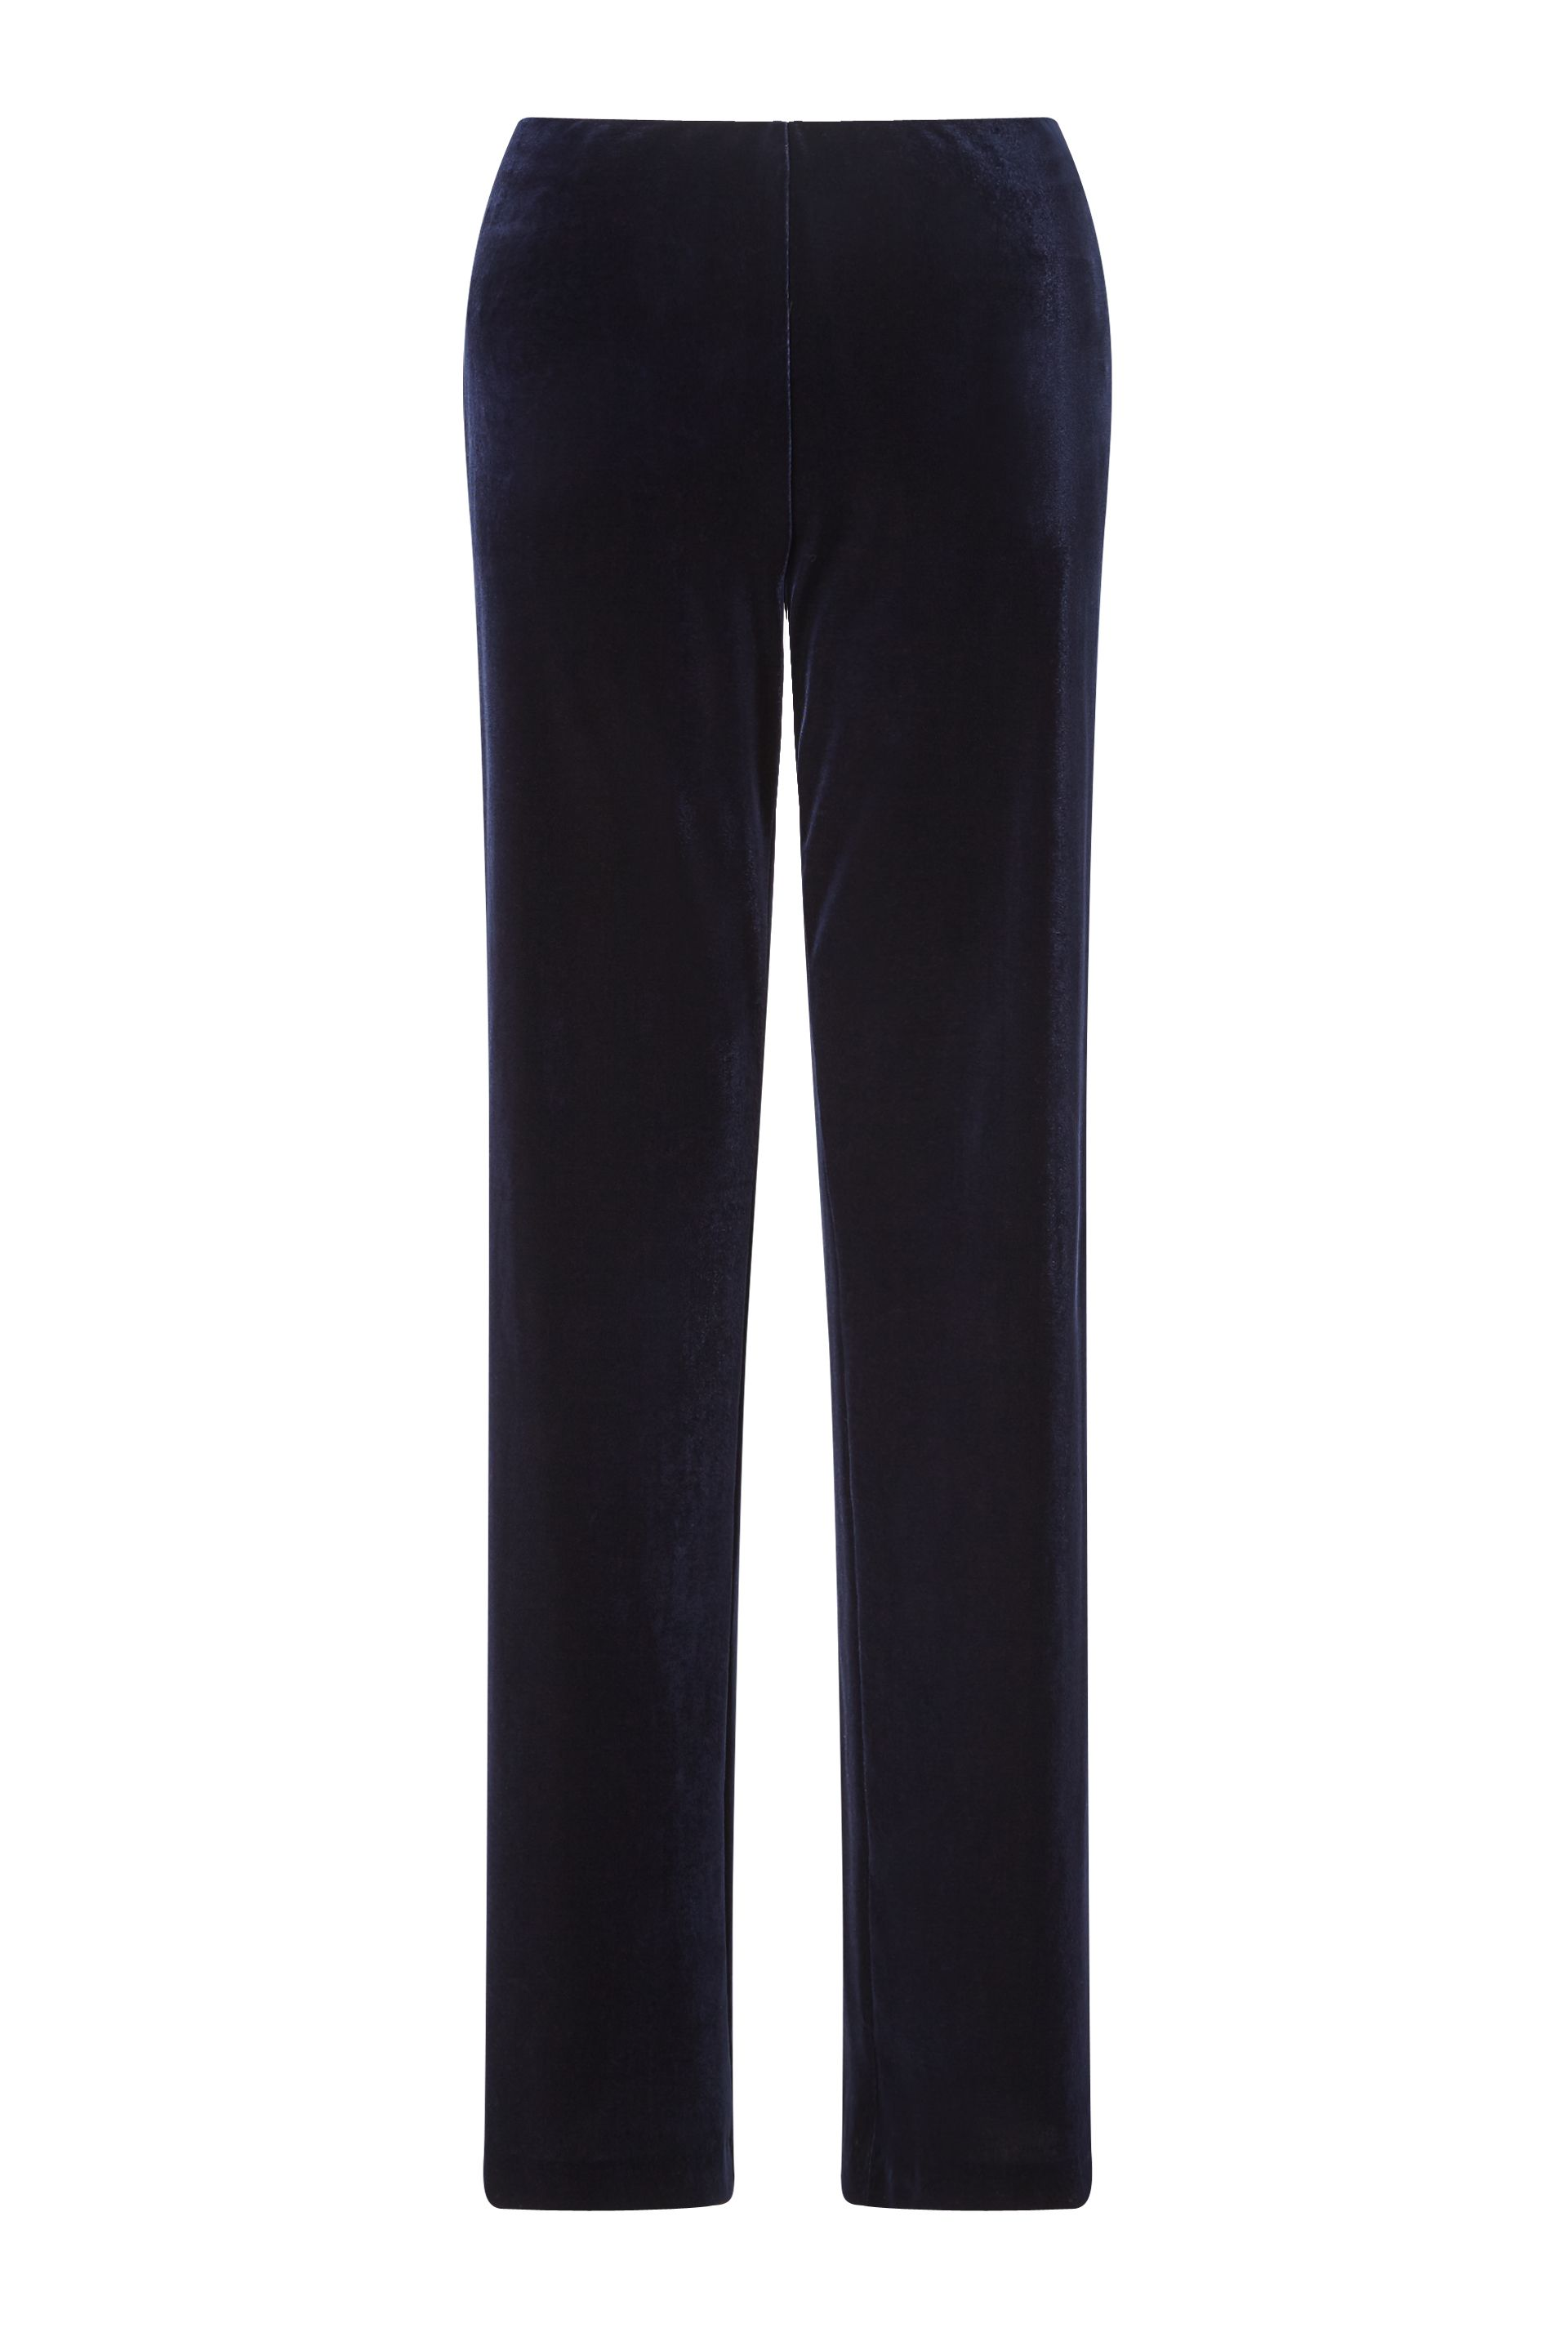 James Lakeland Velvet Trouser, Blue